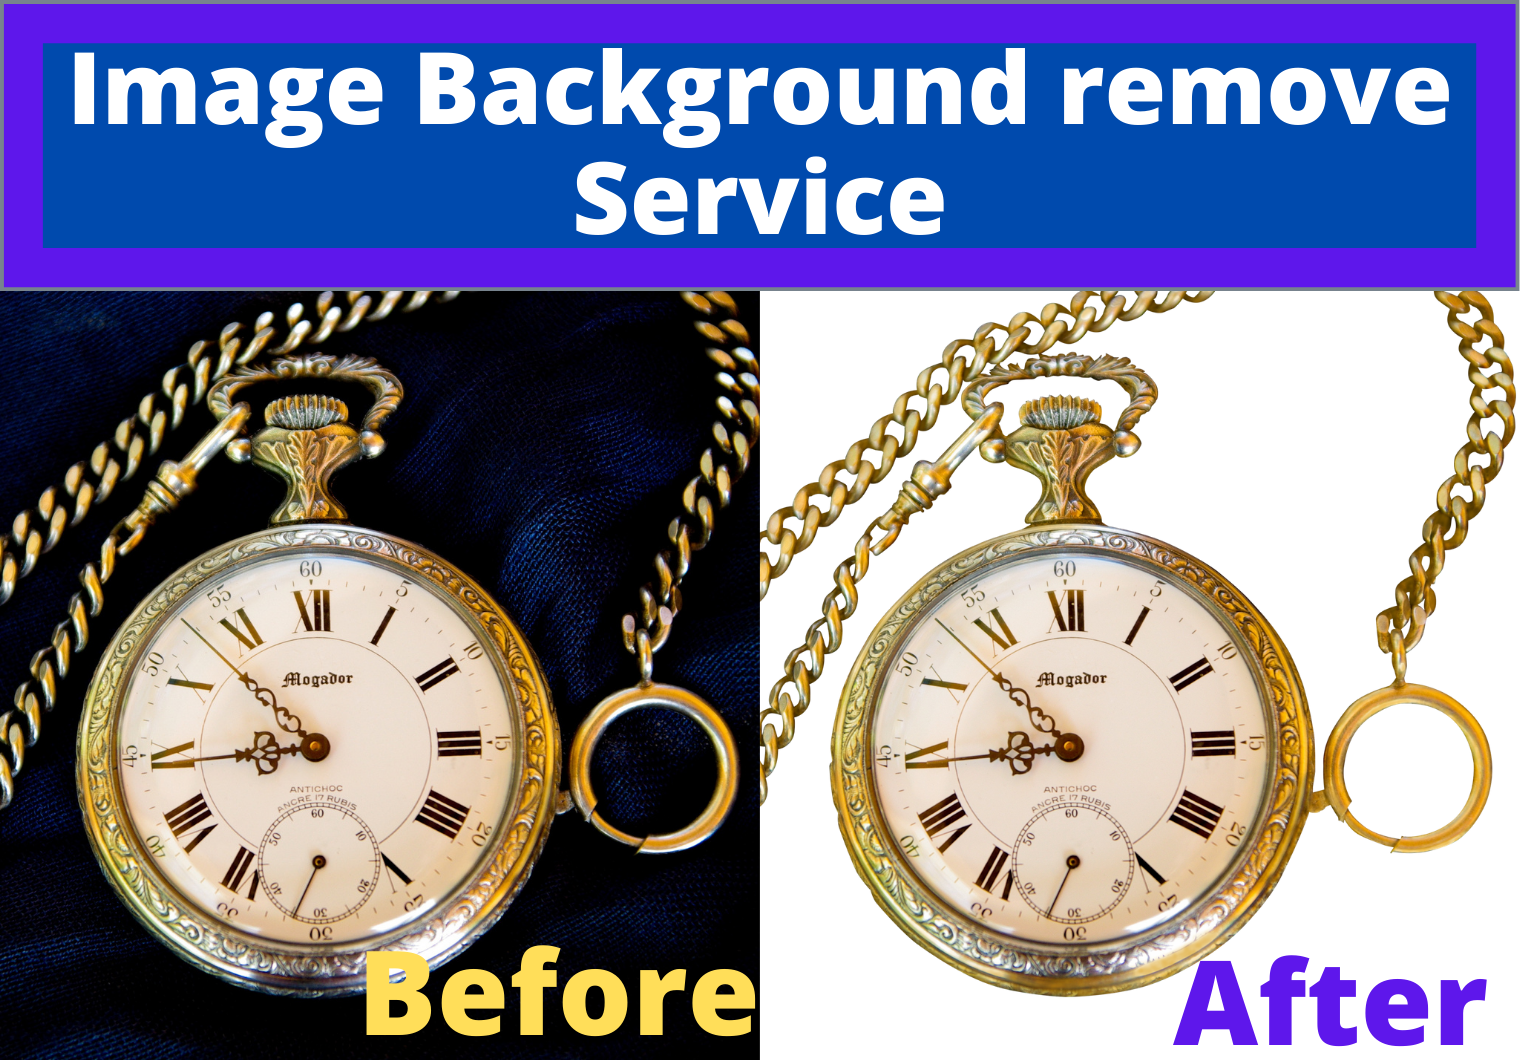 I will do 5 image background remove,clipping path and image editing